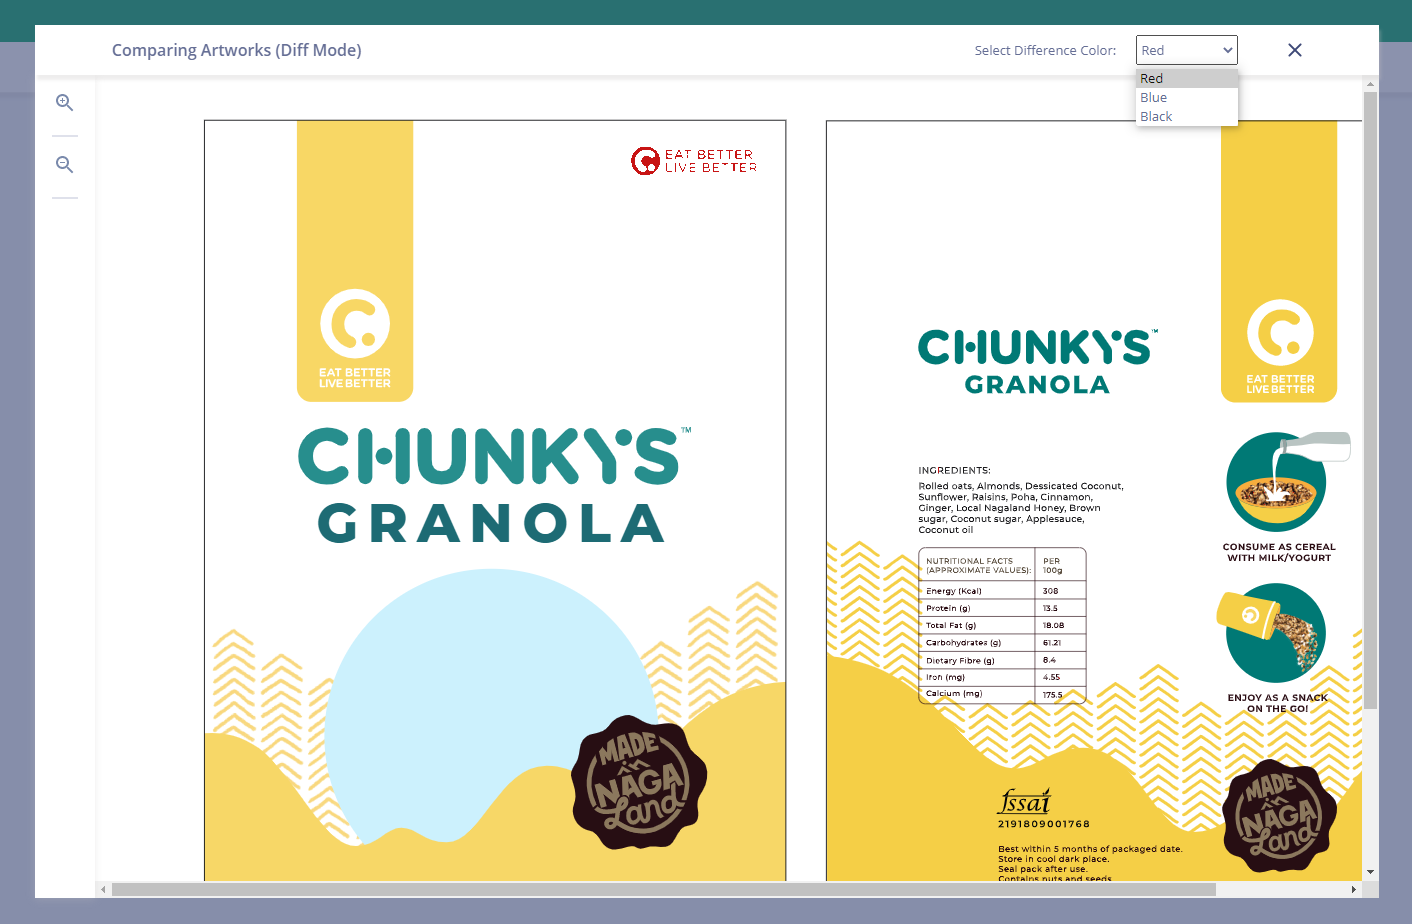 7 Tools That Every Brand Manager Should Bookmark -  PDF Compare Artwork Flow